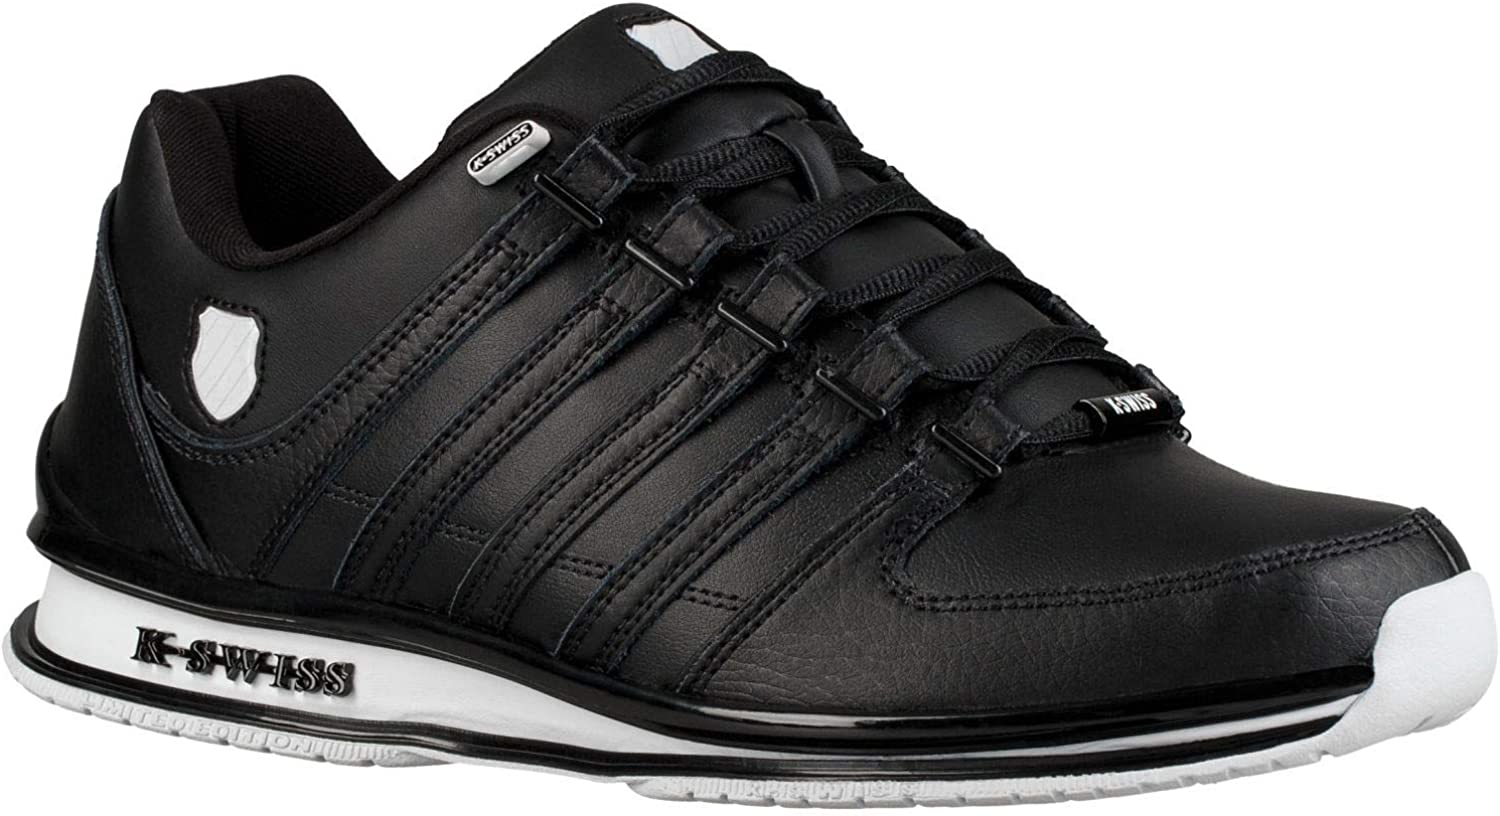 K. Swiss Rinzler SP Black White Mens Leather Trainers shoes